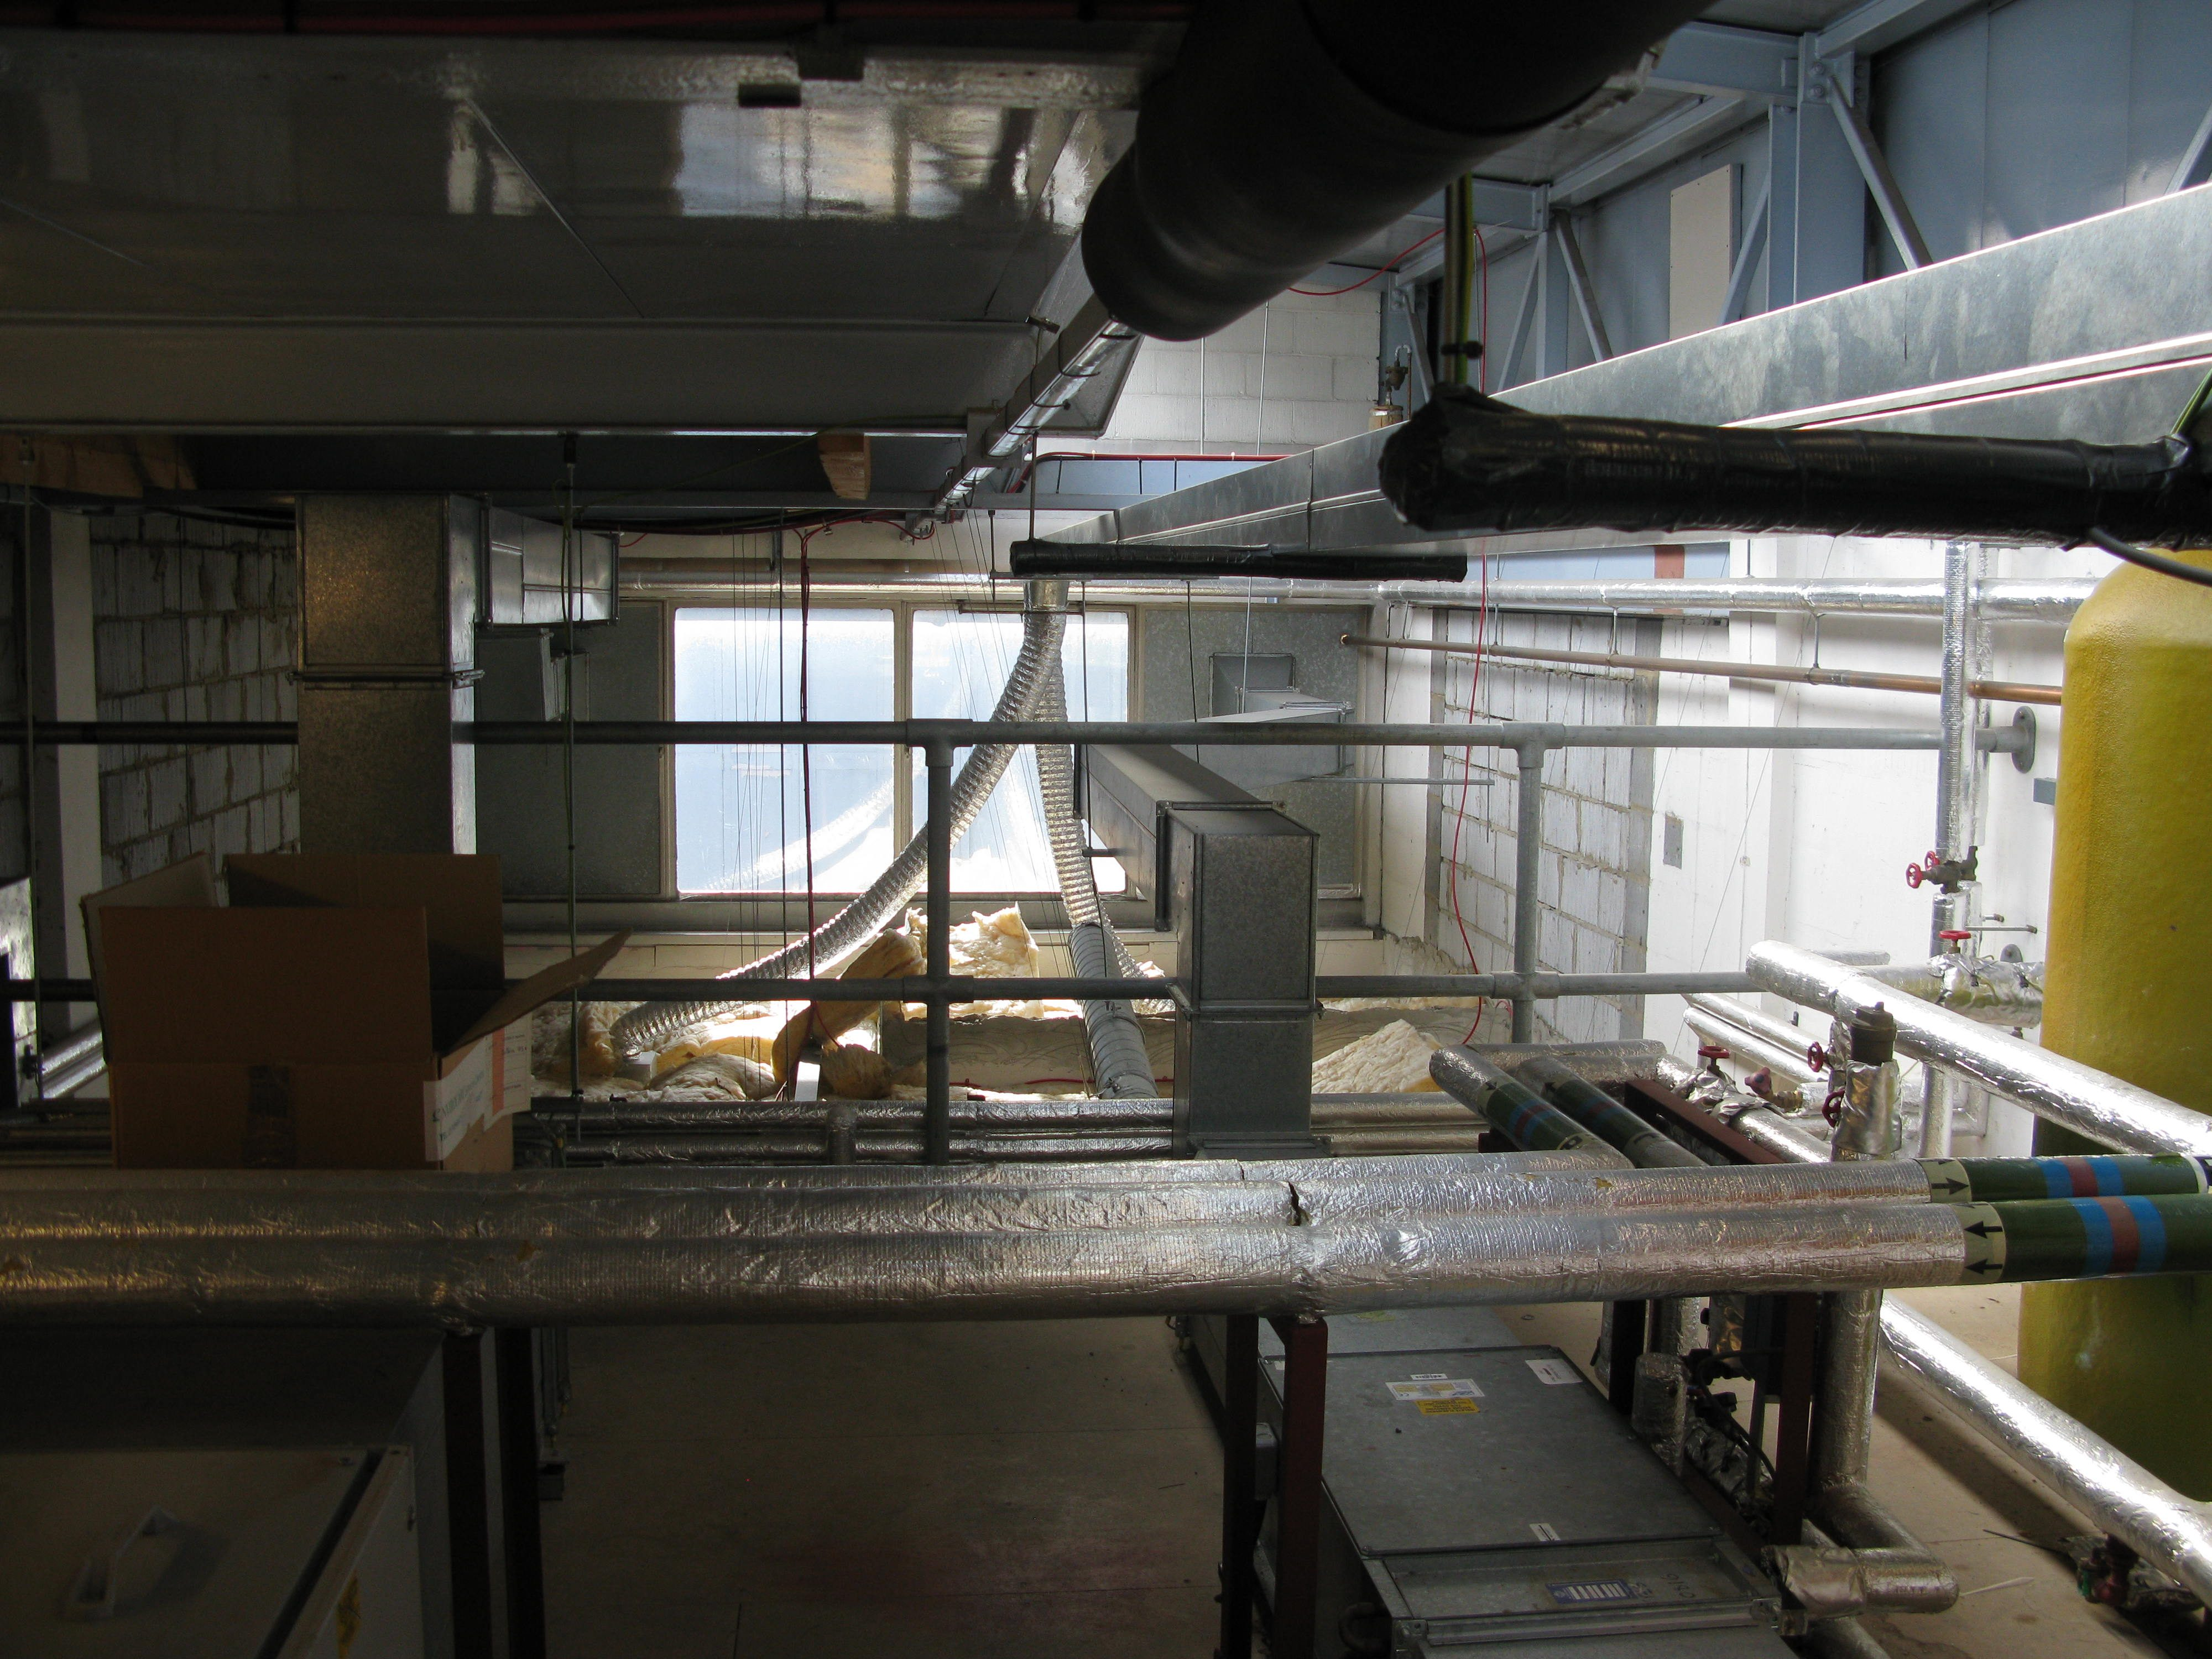 Services Block roof space above shower block